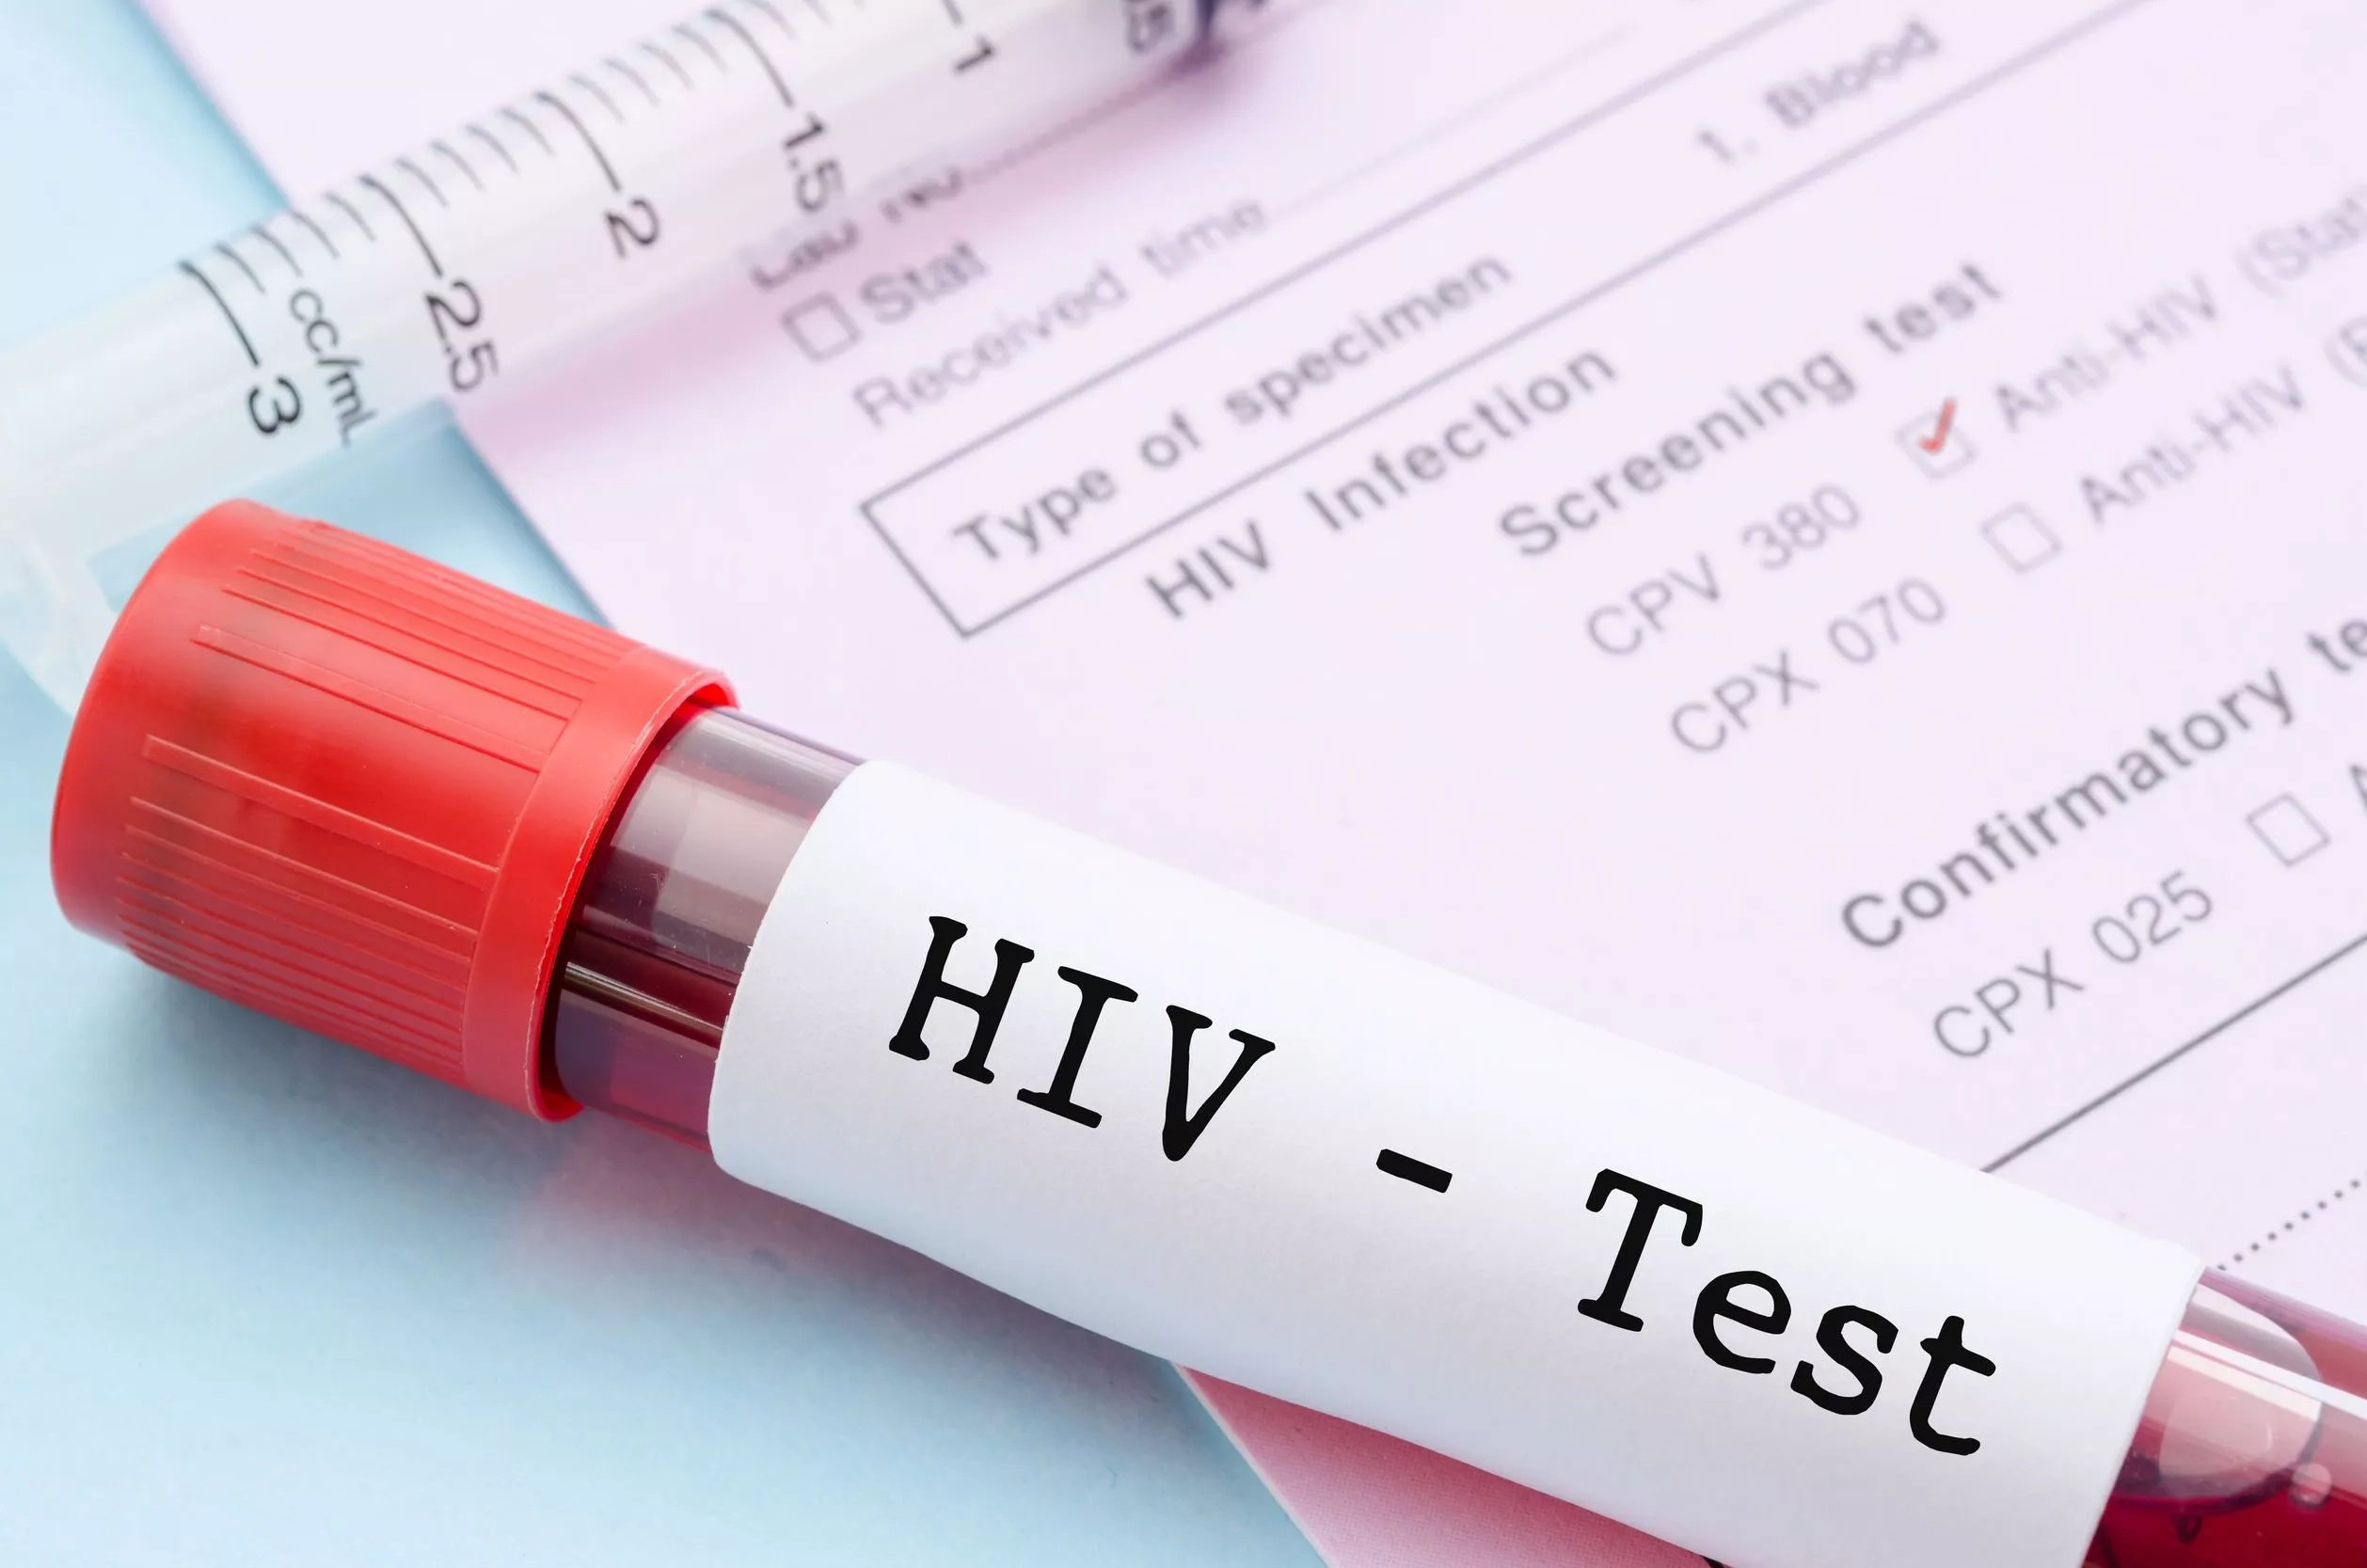 Early Signs of HIV in Men: What Symptoms Should You Look out For?